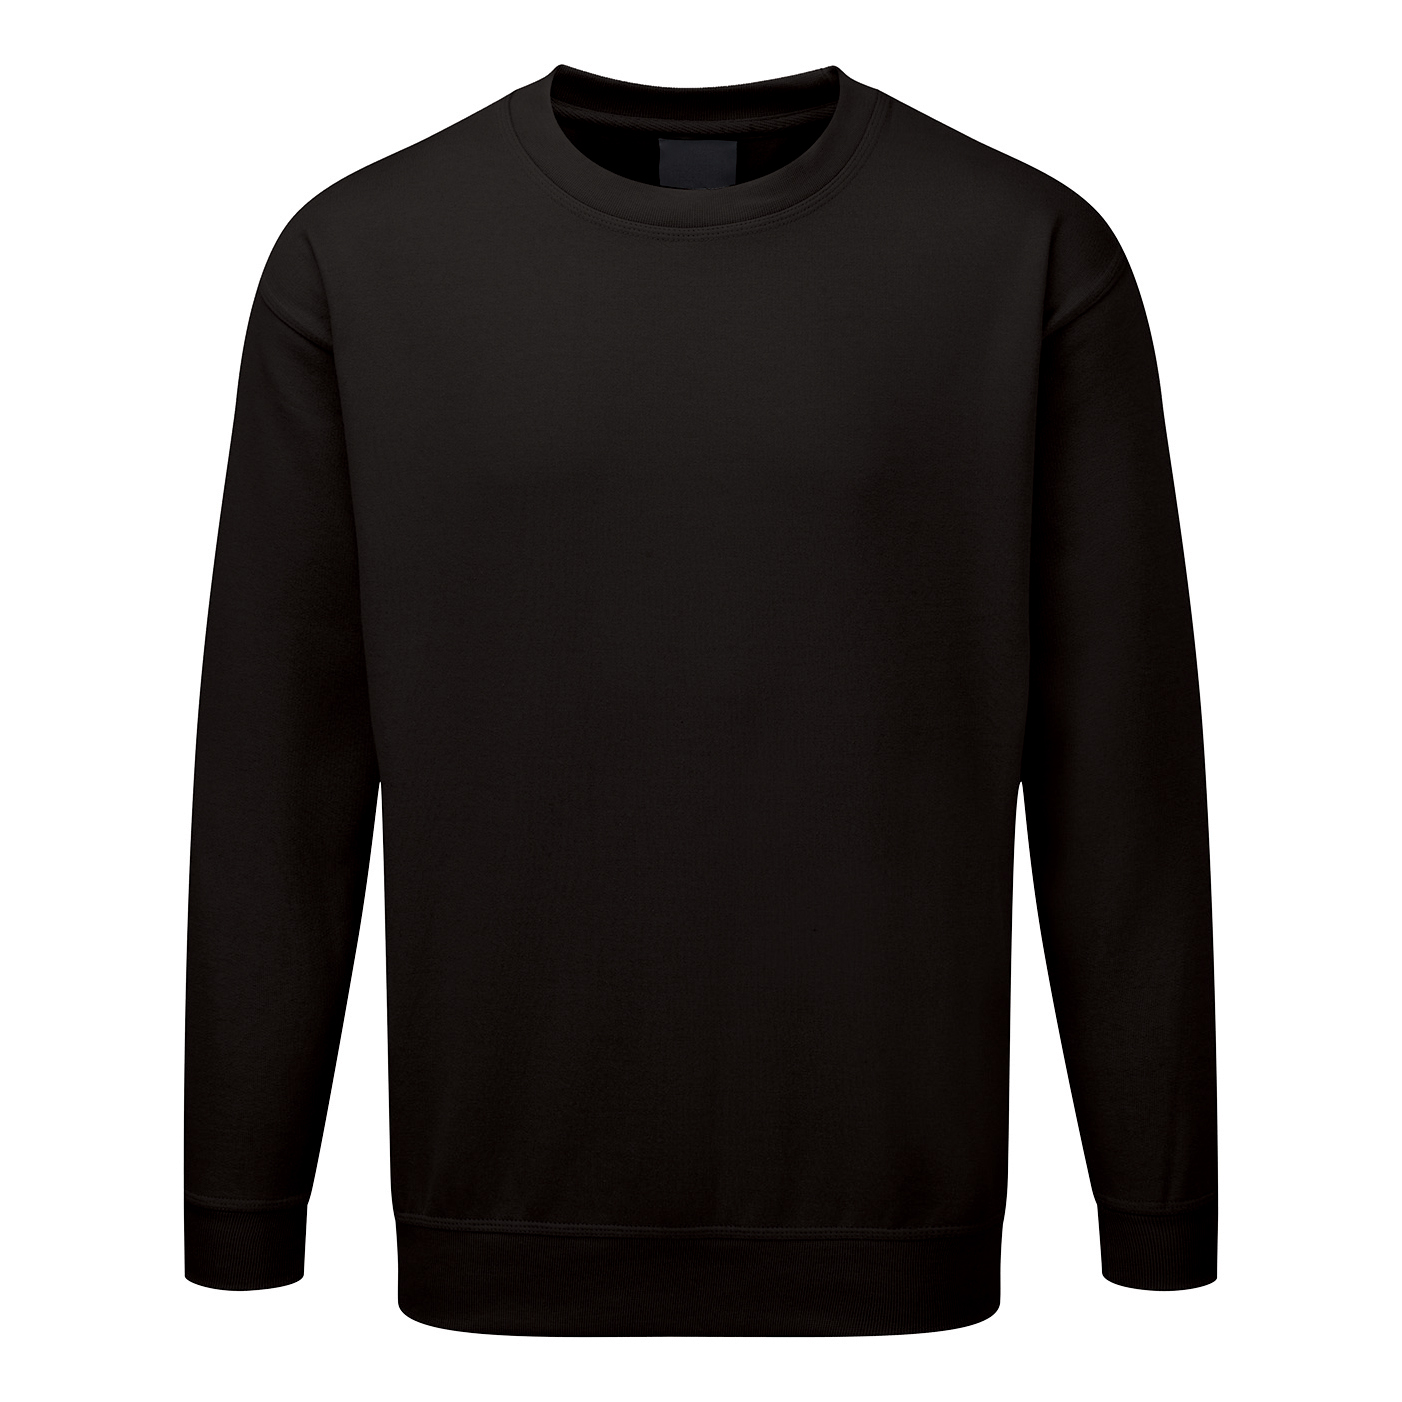 Click Workwear Sweatshirt Polycotton 300gsm 4XL Black Ref CLPCSBL4XL *1-3 Days Lead Time*